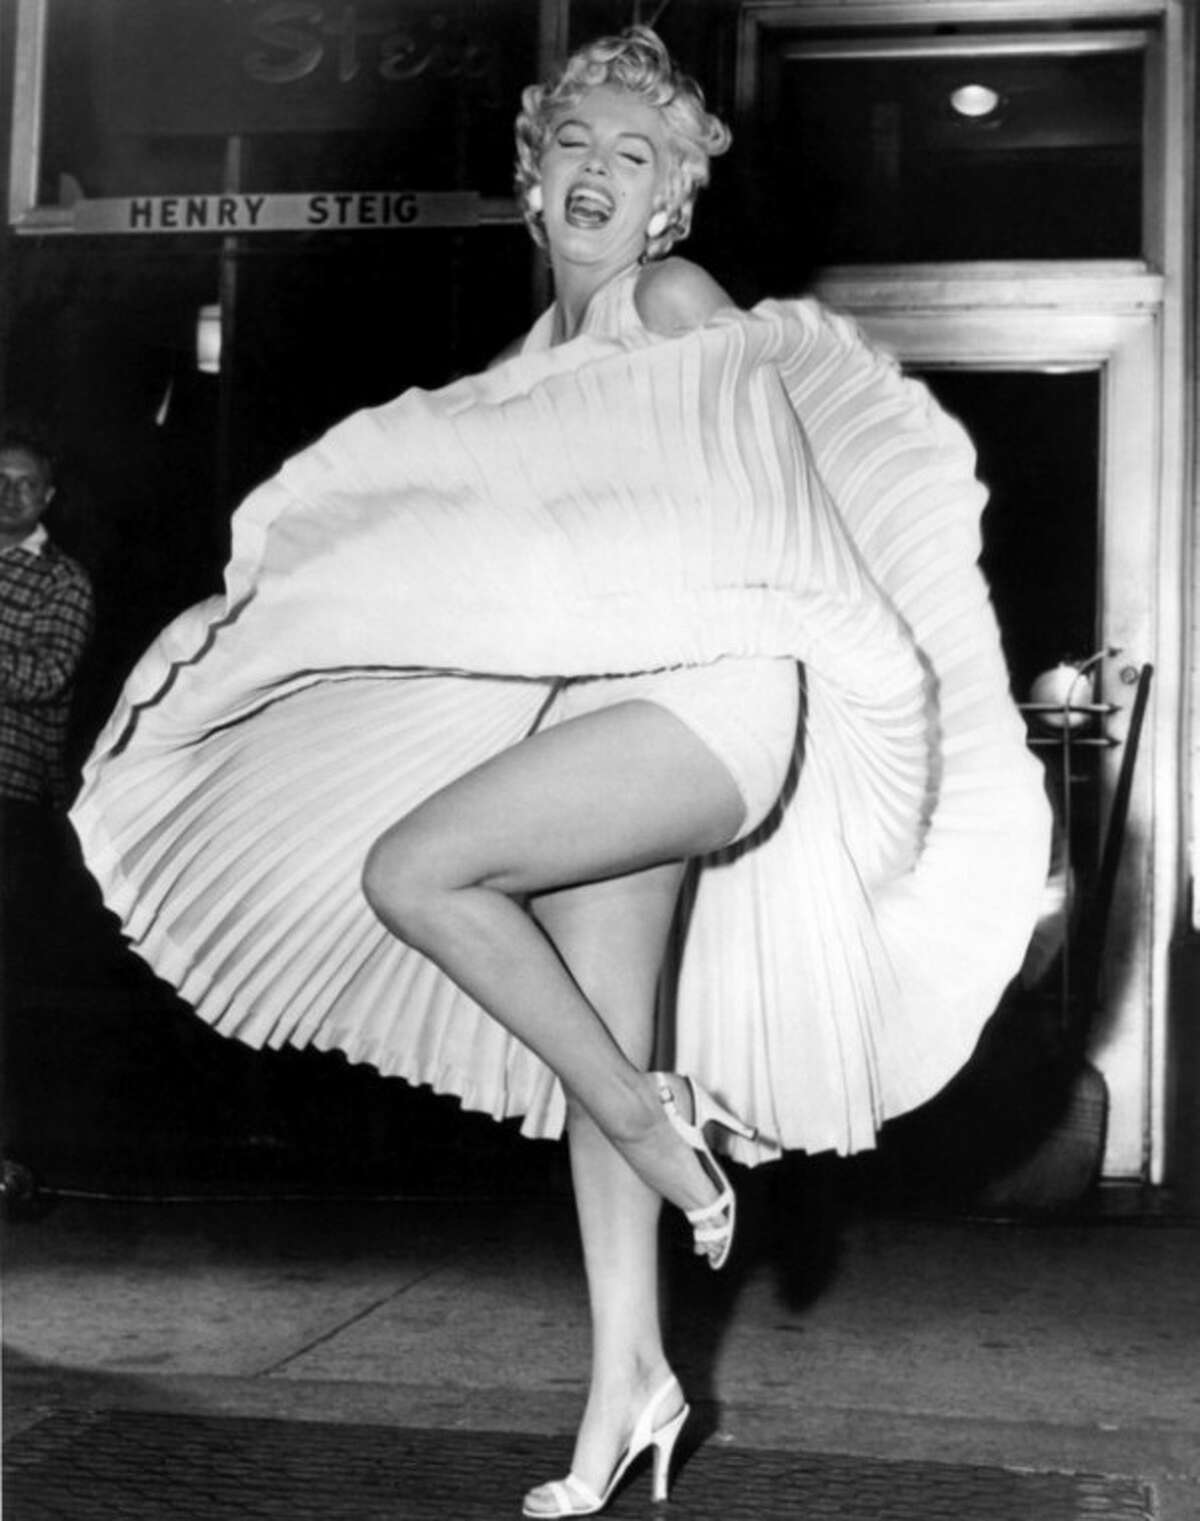 """In this September 15, 1954 publicity photo courtesy Running Press, Marilyn Monroe is shown during the ?""""subway?"""" scene of """"The Seven Year Itch,"""" filmed late in the evening on Lexington Avenue in New York. Monroe passed away a half-century ago this week, a murky death that remains one of Hollywood's most tantalizing mysteries. But look around: Her legend lives on, more vibrantly than ever. In a twist she surely would have appreciated, this 1950's bombshell has become a 21st-century pop culture phenom. (AP Photo/Courtesy Running Press)"""